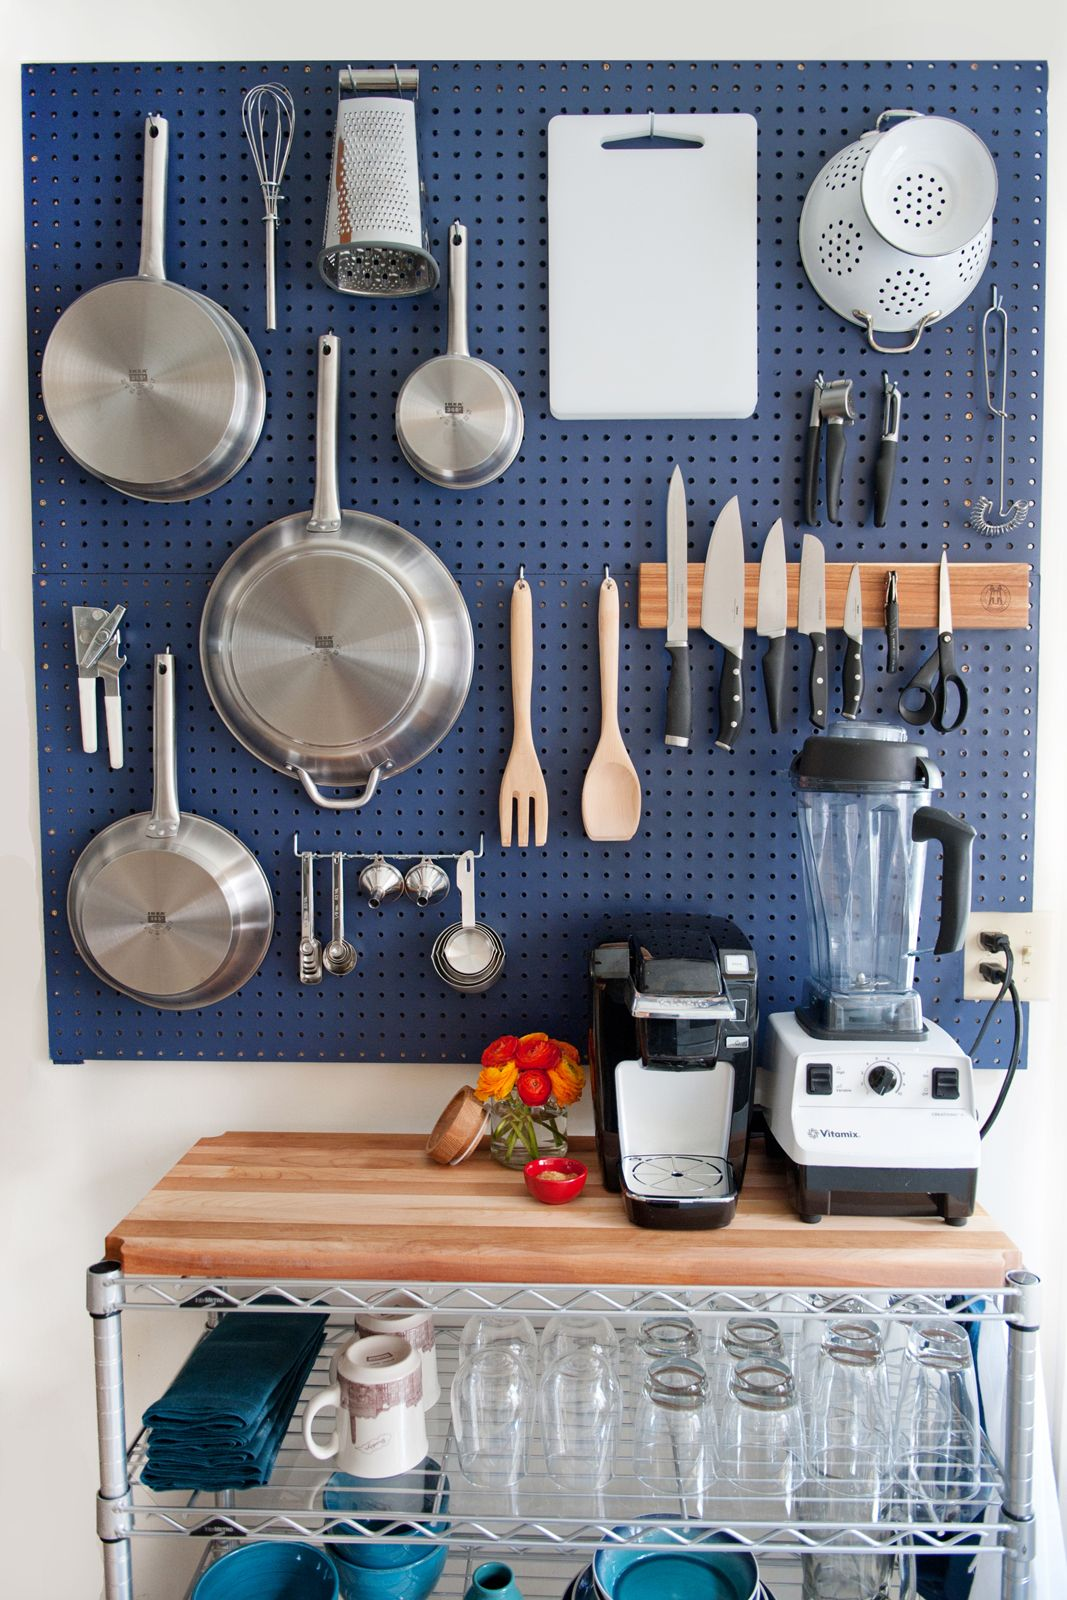 Kitchen Pegboard Oak Cabinet Make Your The Coziest Interior Design Decorating Ideas For Small Space Homes